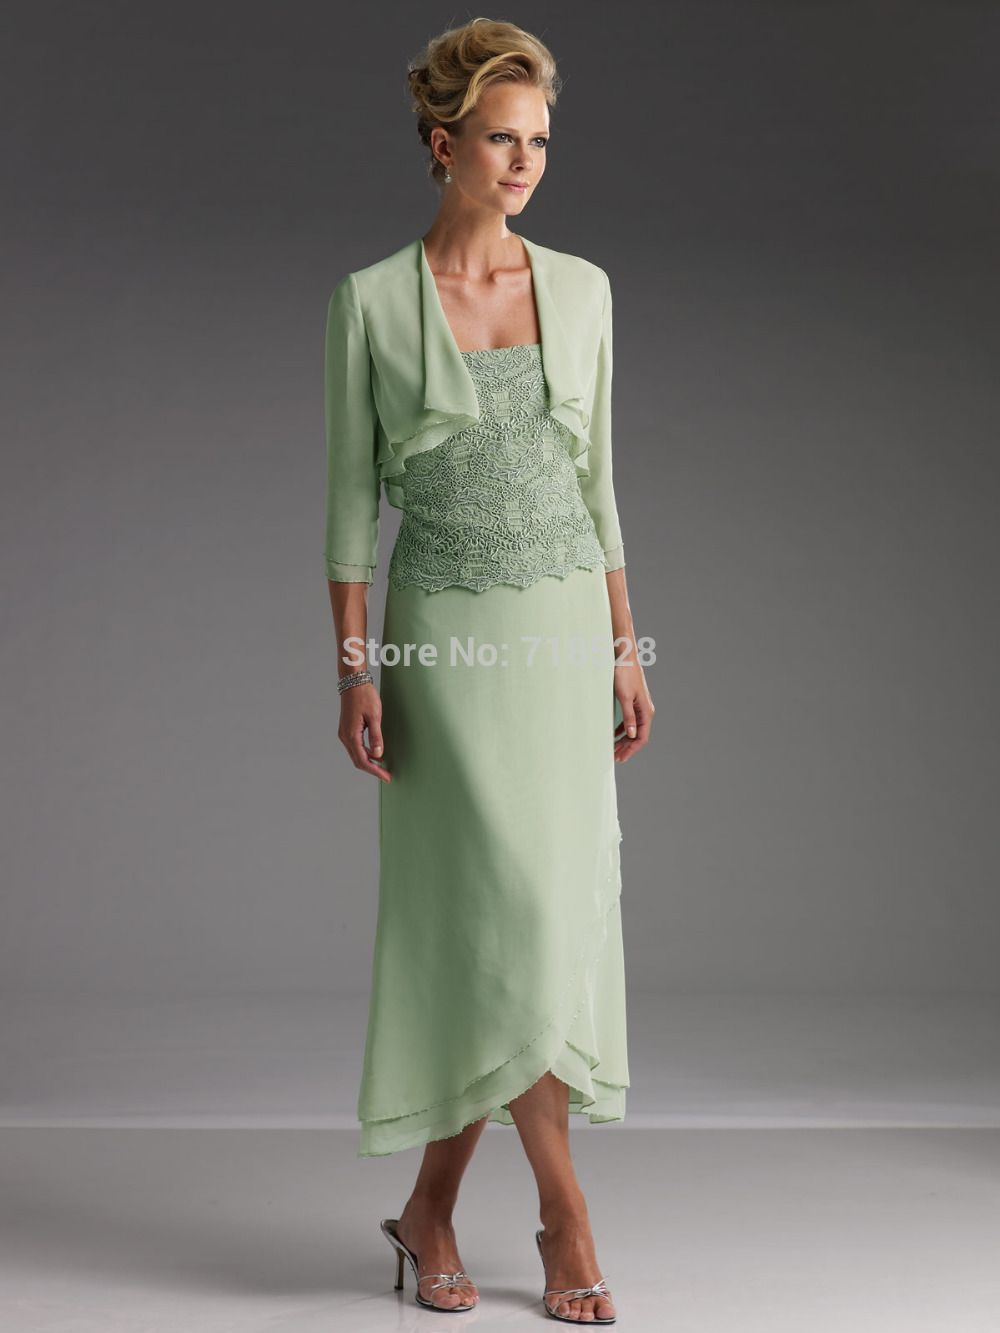 7 Outfits For The Mother Of The Bride Mother Of The Bride Outfit Mother Of Bride Outfits Bride Clothes